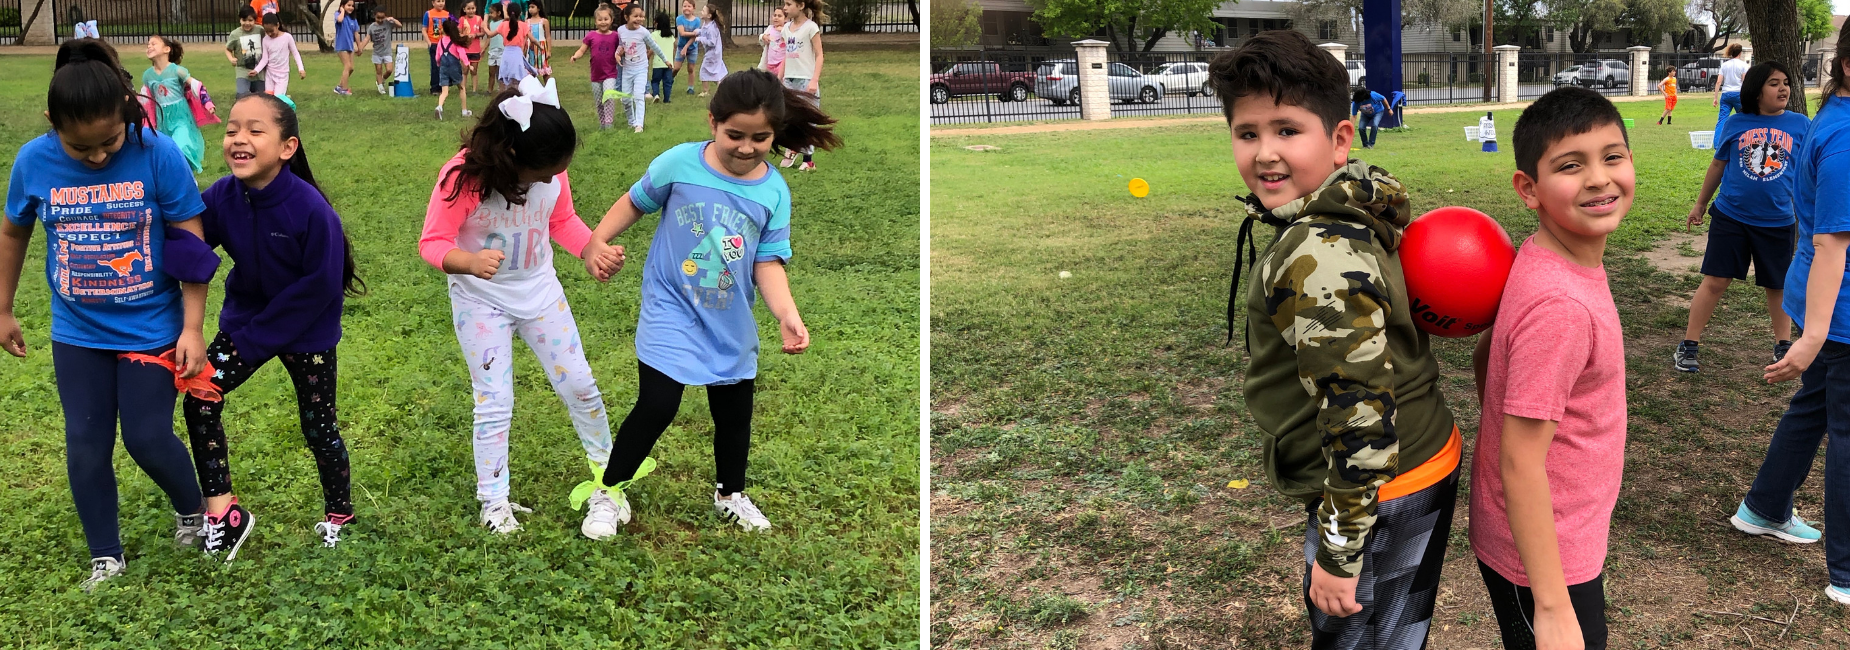 Milam Field Day